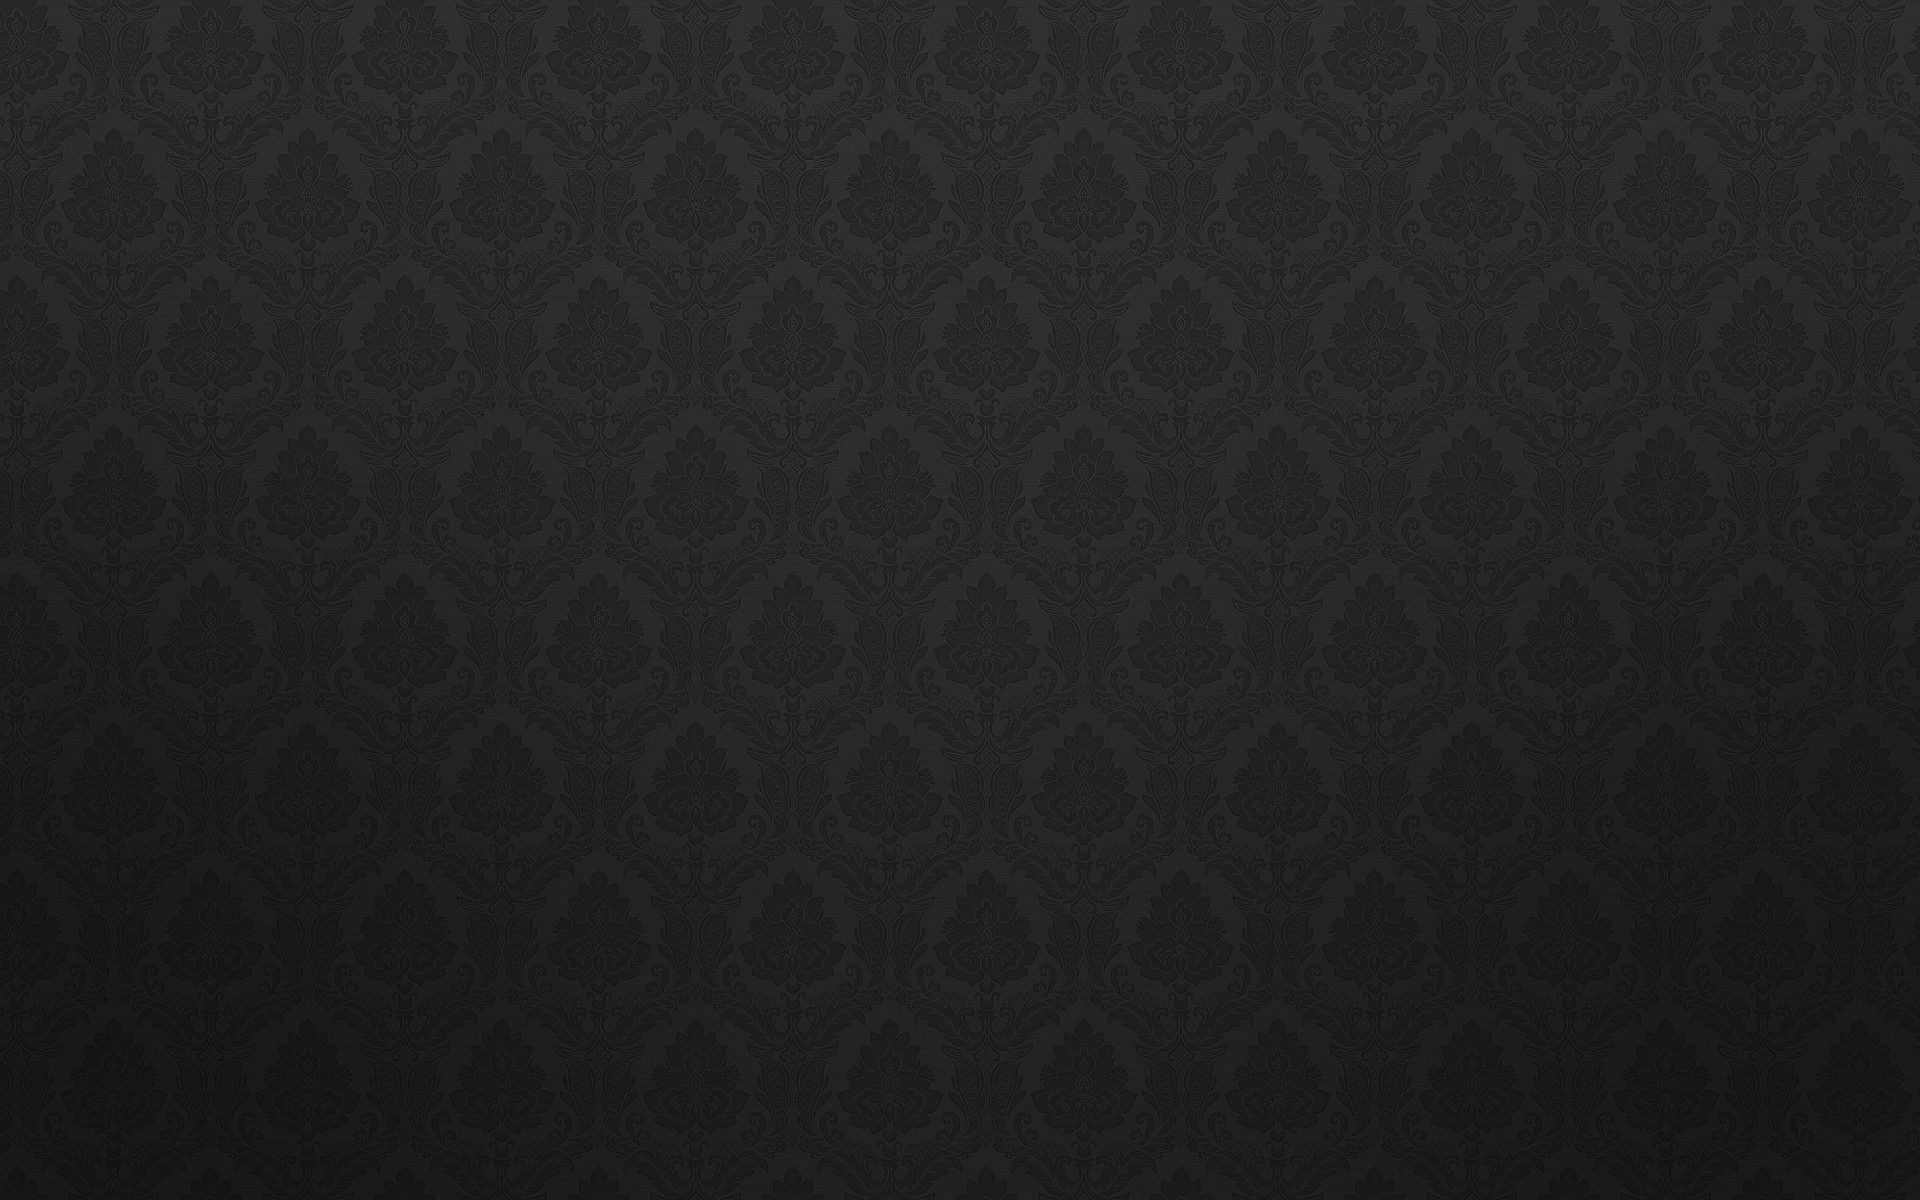 HD-wallpaper-Otife-Dark-black-plain-design-background.